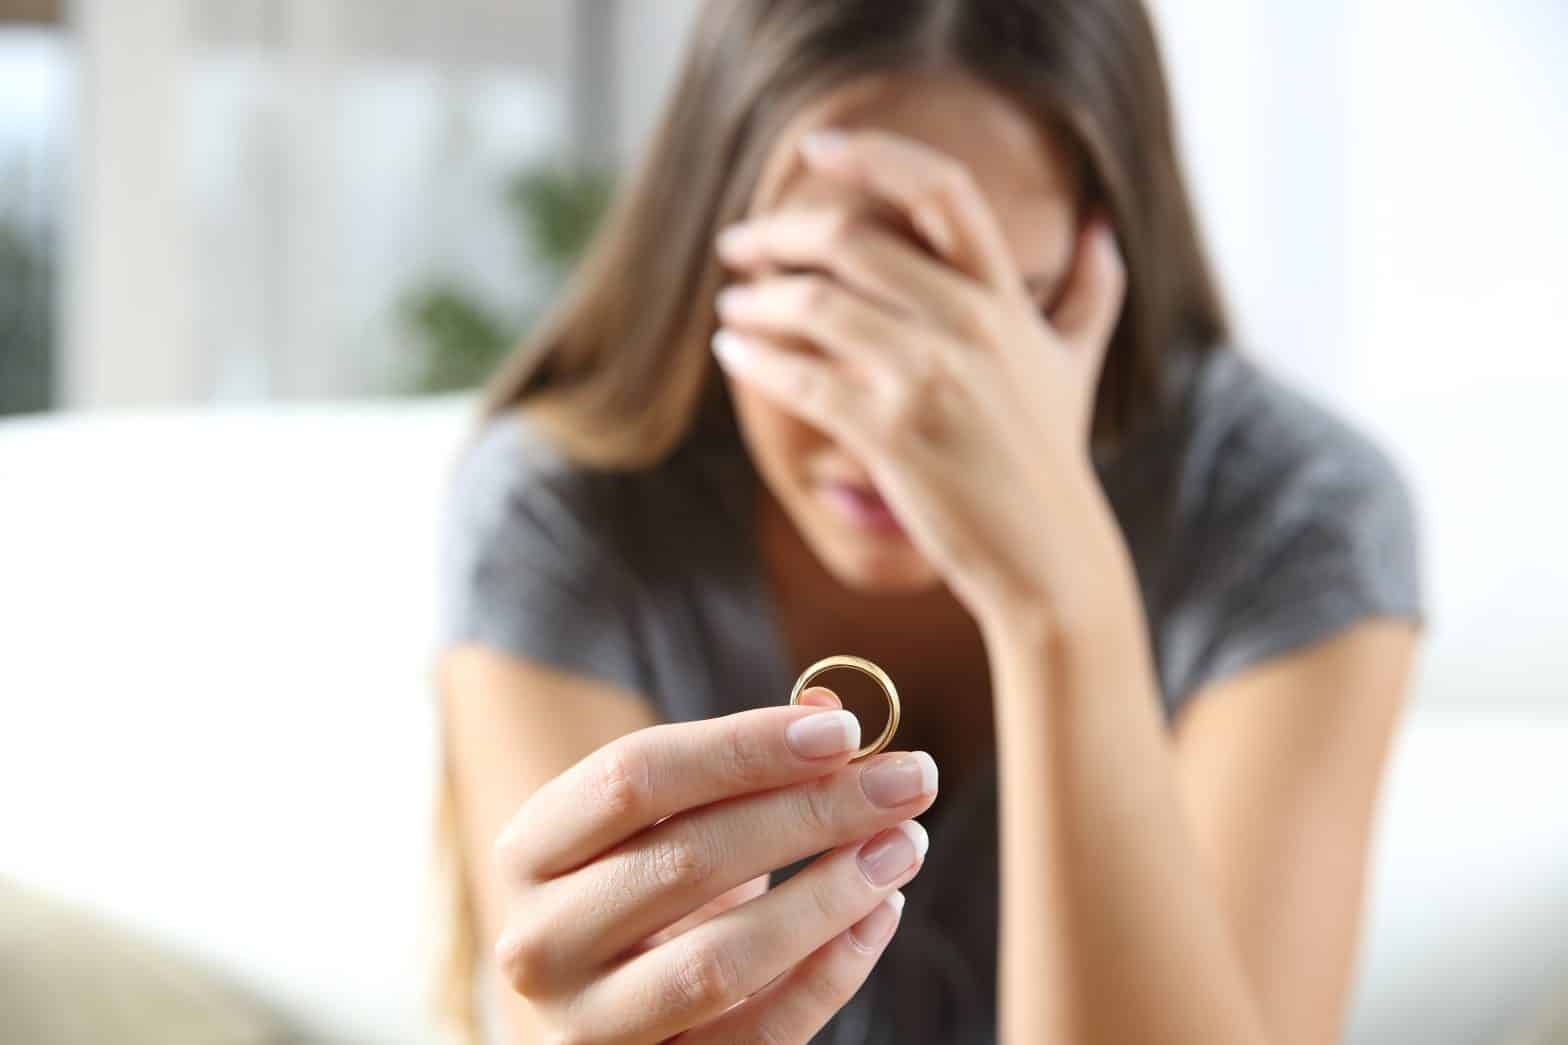 Closeup of a sad woman holding out a wedding ring with her hand covering her face looking sad.